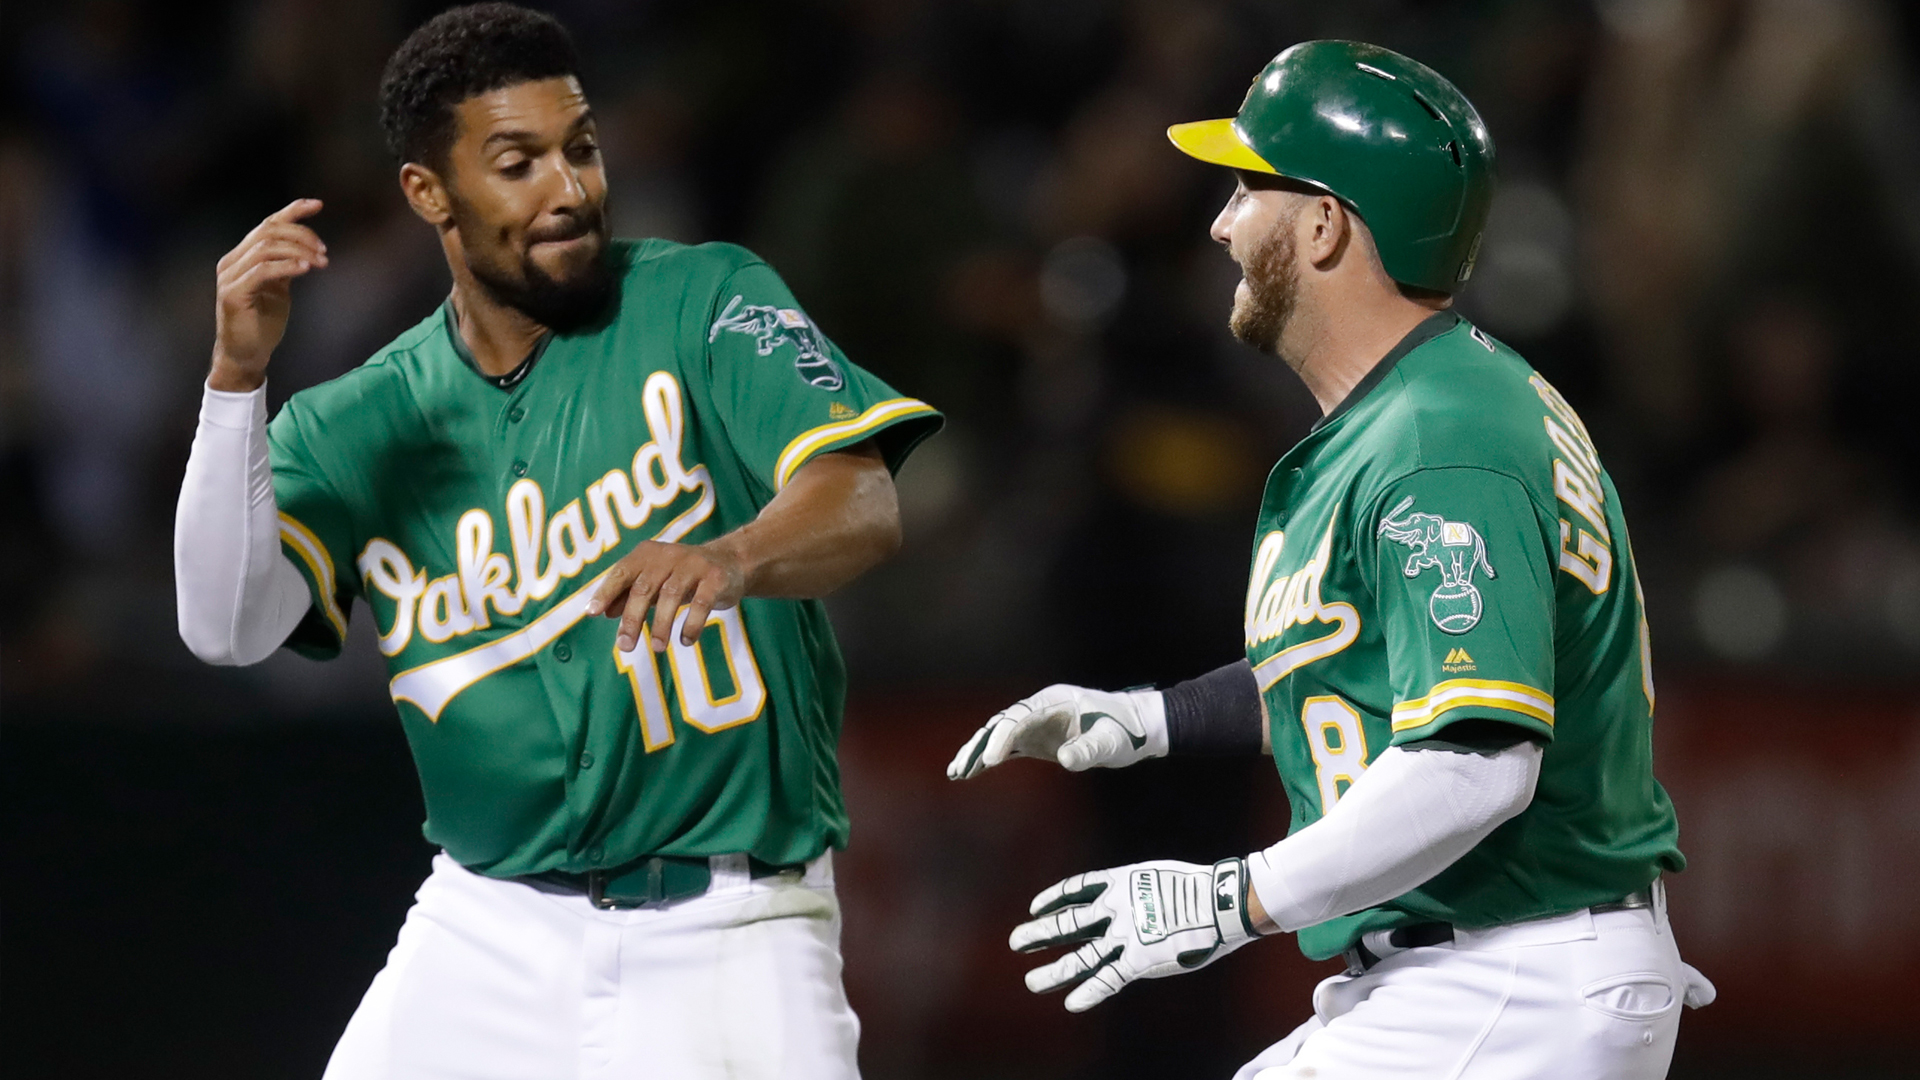 A's topple Astros again on Robbie Grossman's walk-off in 13th